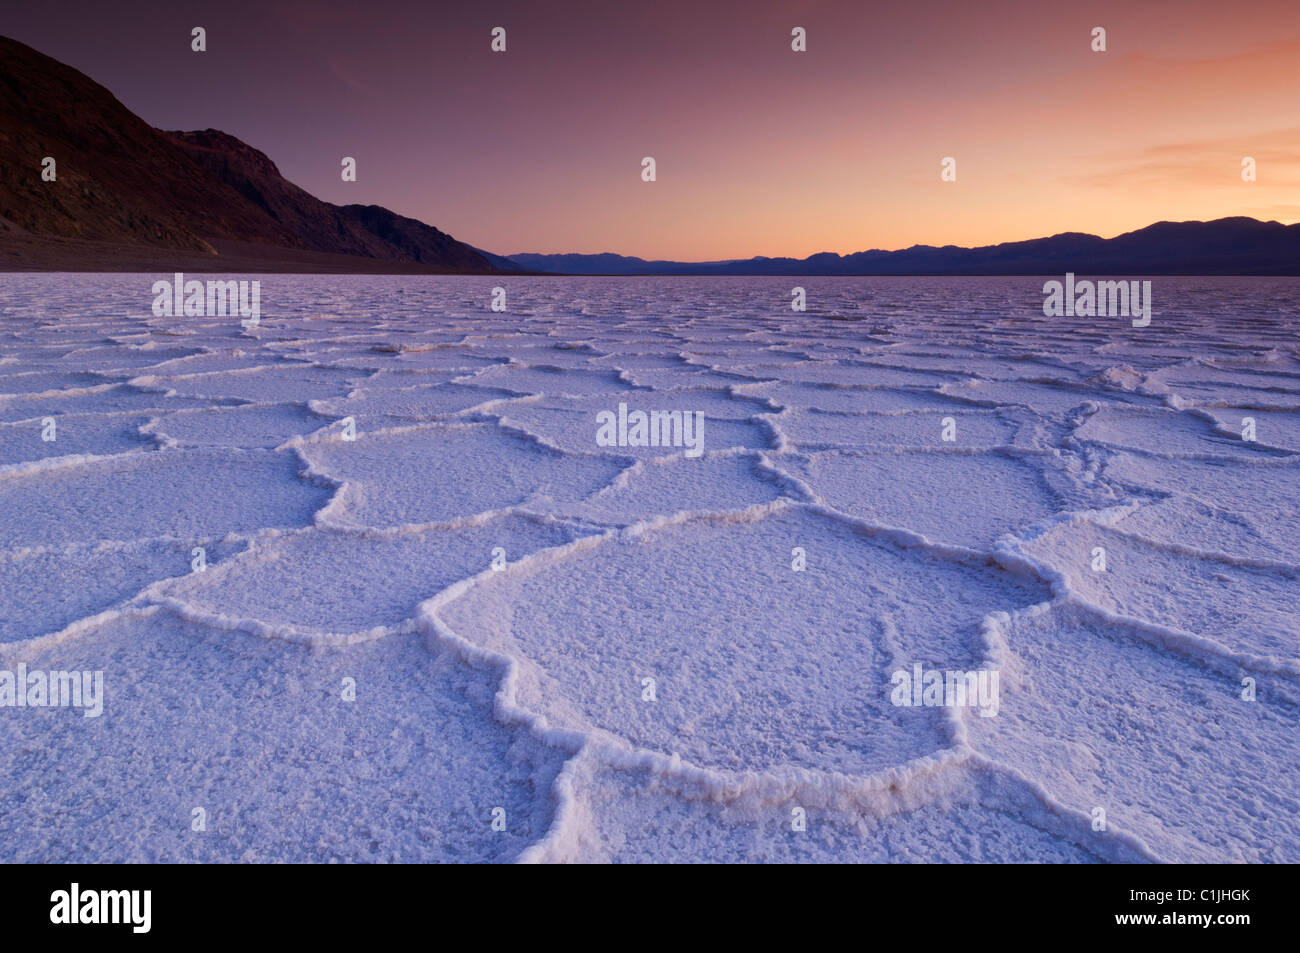 Pan de sel au coucher du soleil des polygones du bassin de Badwater Death Valley National Park, California, USA Banque D'Images